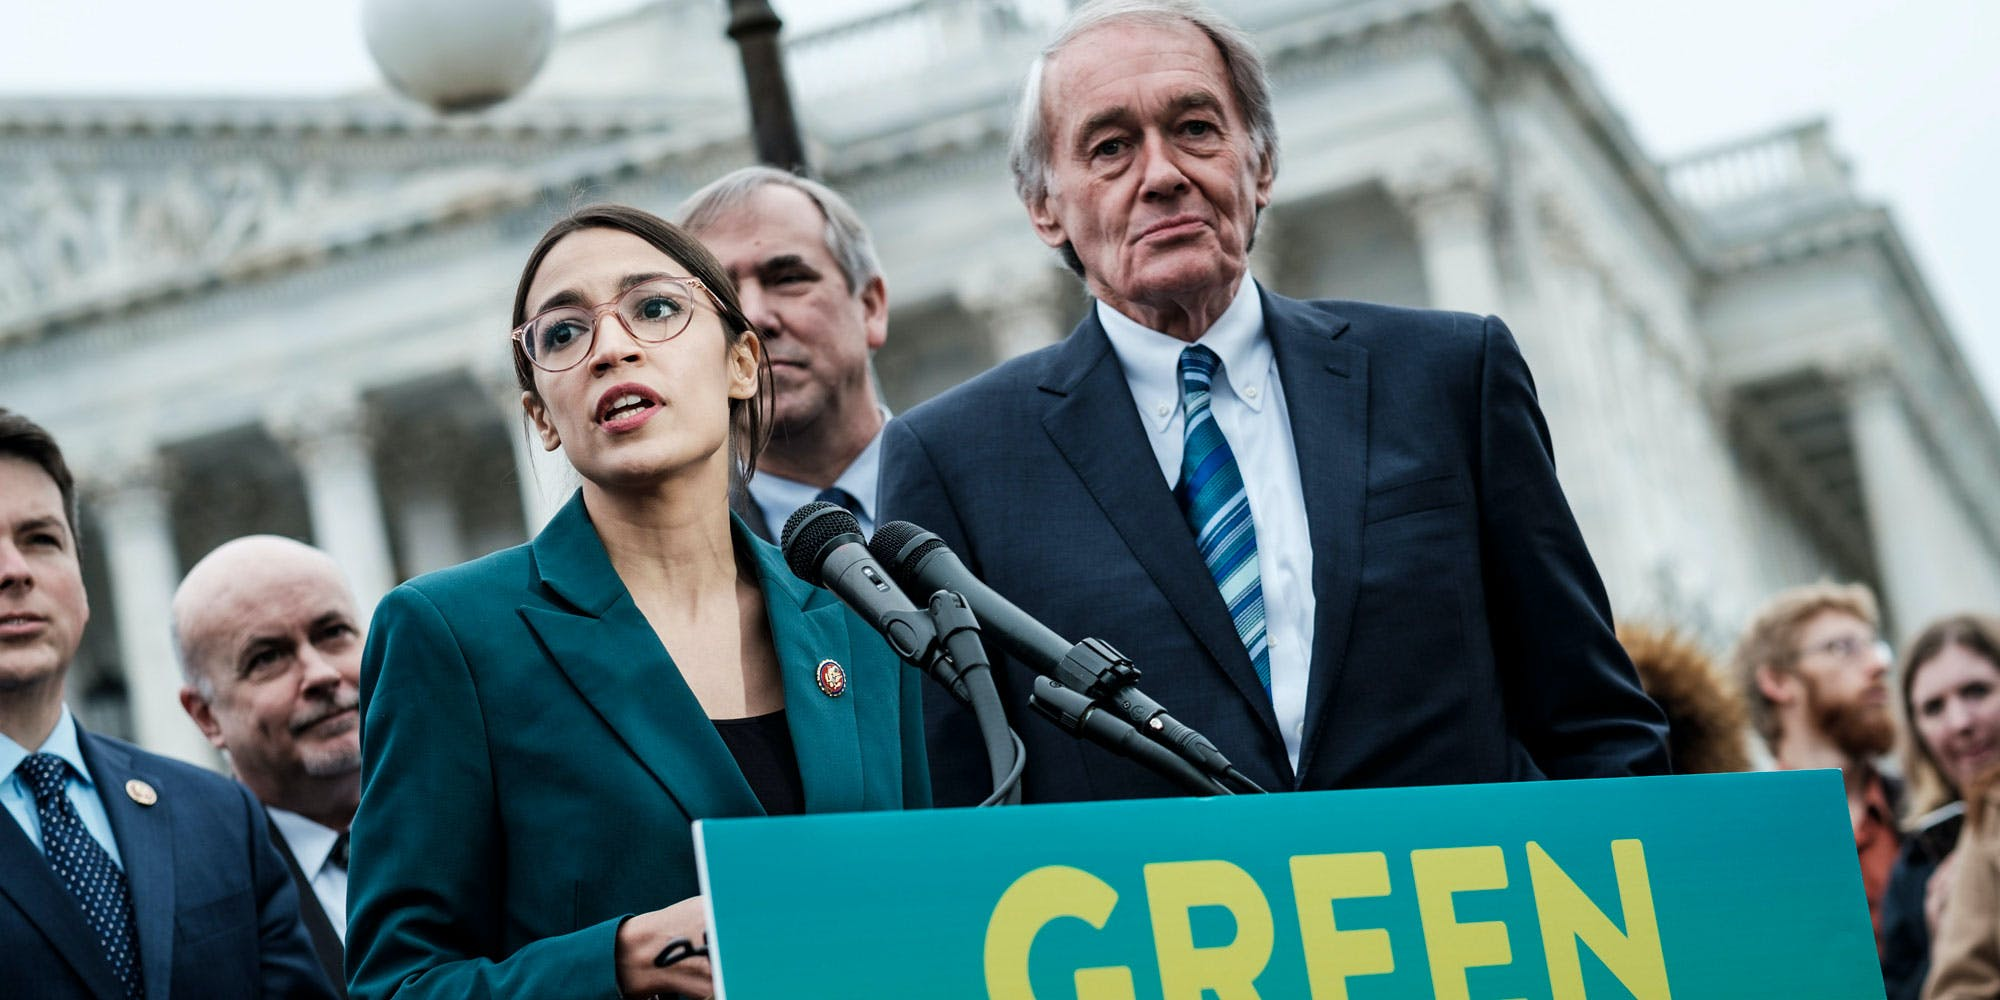 Rep. Alexandria Ocasio-Cortez (D-N.Y.) speaks alongside Sen. Ed Markey (D-Mass.) at a news conference about the Green New Deal, in Washington, Feb. 7, 2019. The measure, drafted by Ocasio-Cortez and Markey, calls for a sweeping environmental and economic mobilization that would make the United States carbon neutral by 2030. (Pete Marovich/The New York Times)